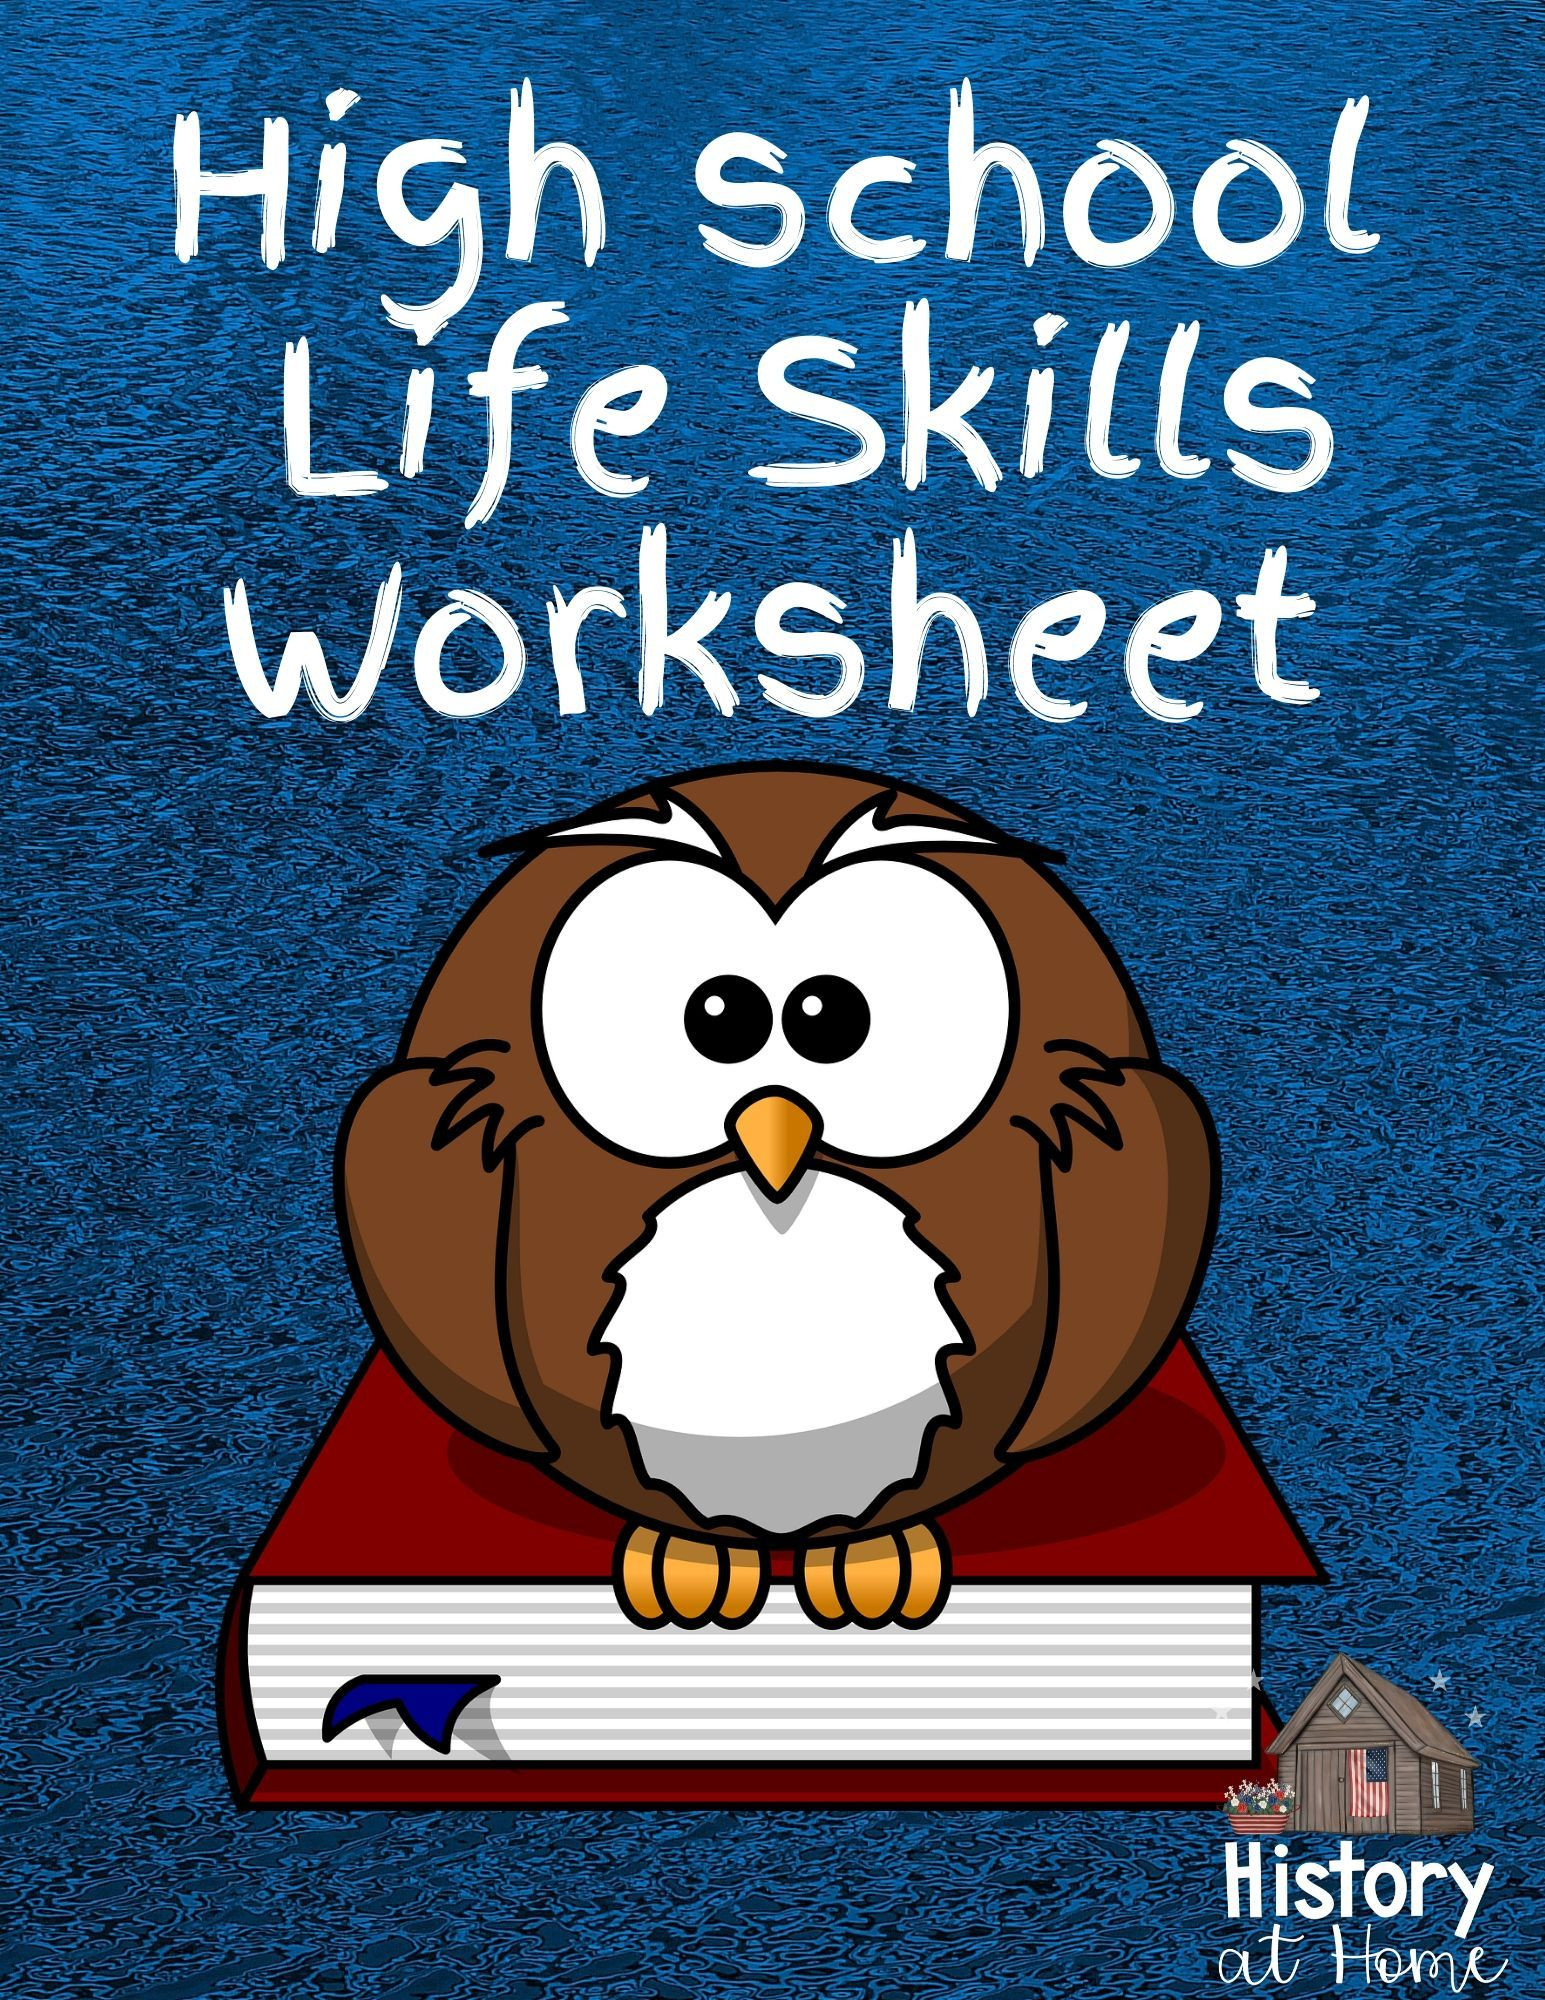 High School Life Skills Worksheet Free For 9 12th Grades